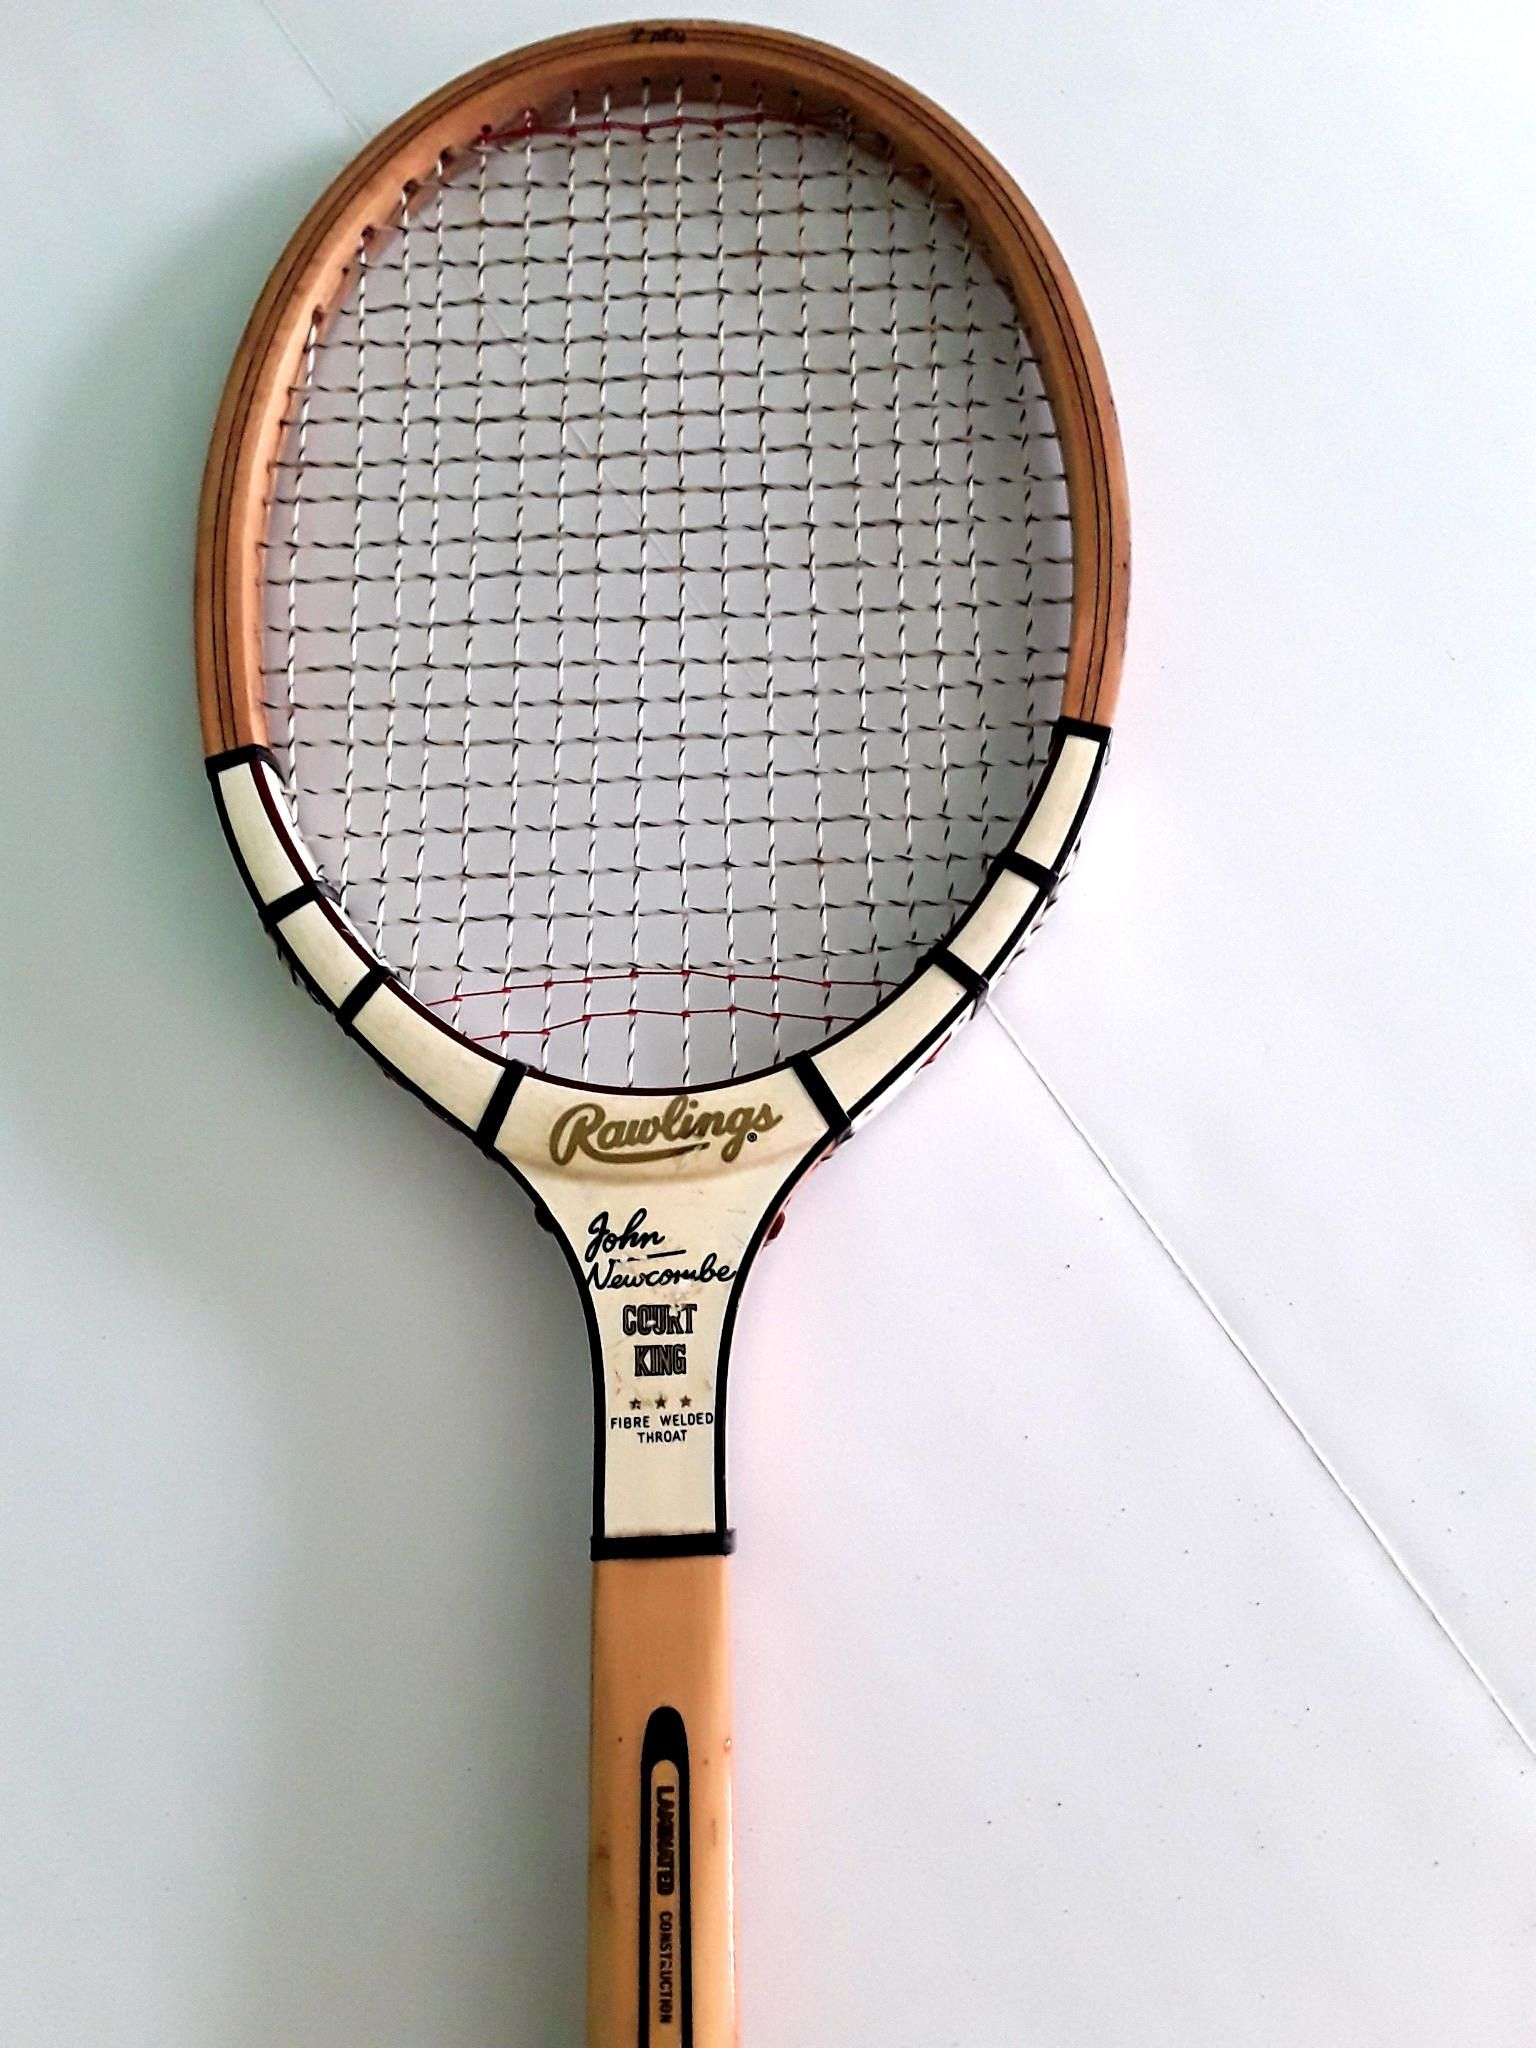 Rawlings John Newcombe Court King Vintage Wood Tennis Racquet 60s 70s By Fchoicevintage On Etsy Johnnewcombe Https Linkt Tennis Tennis Racquet John Newcombe